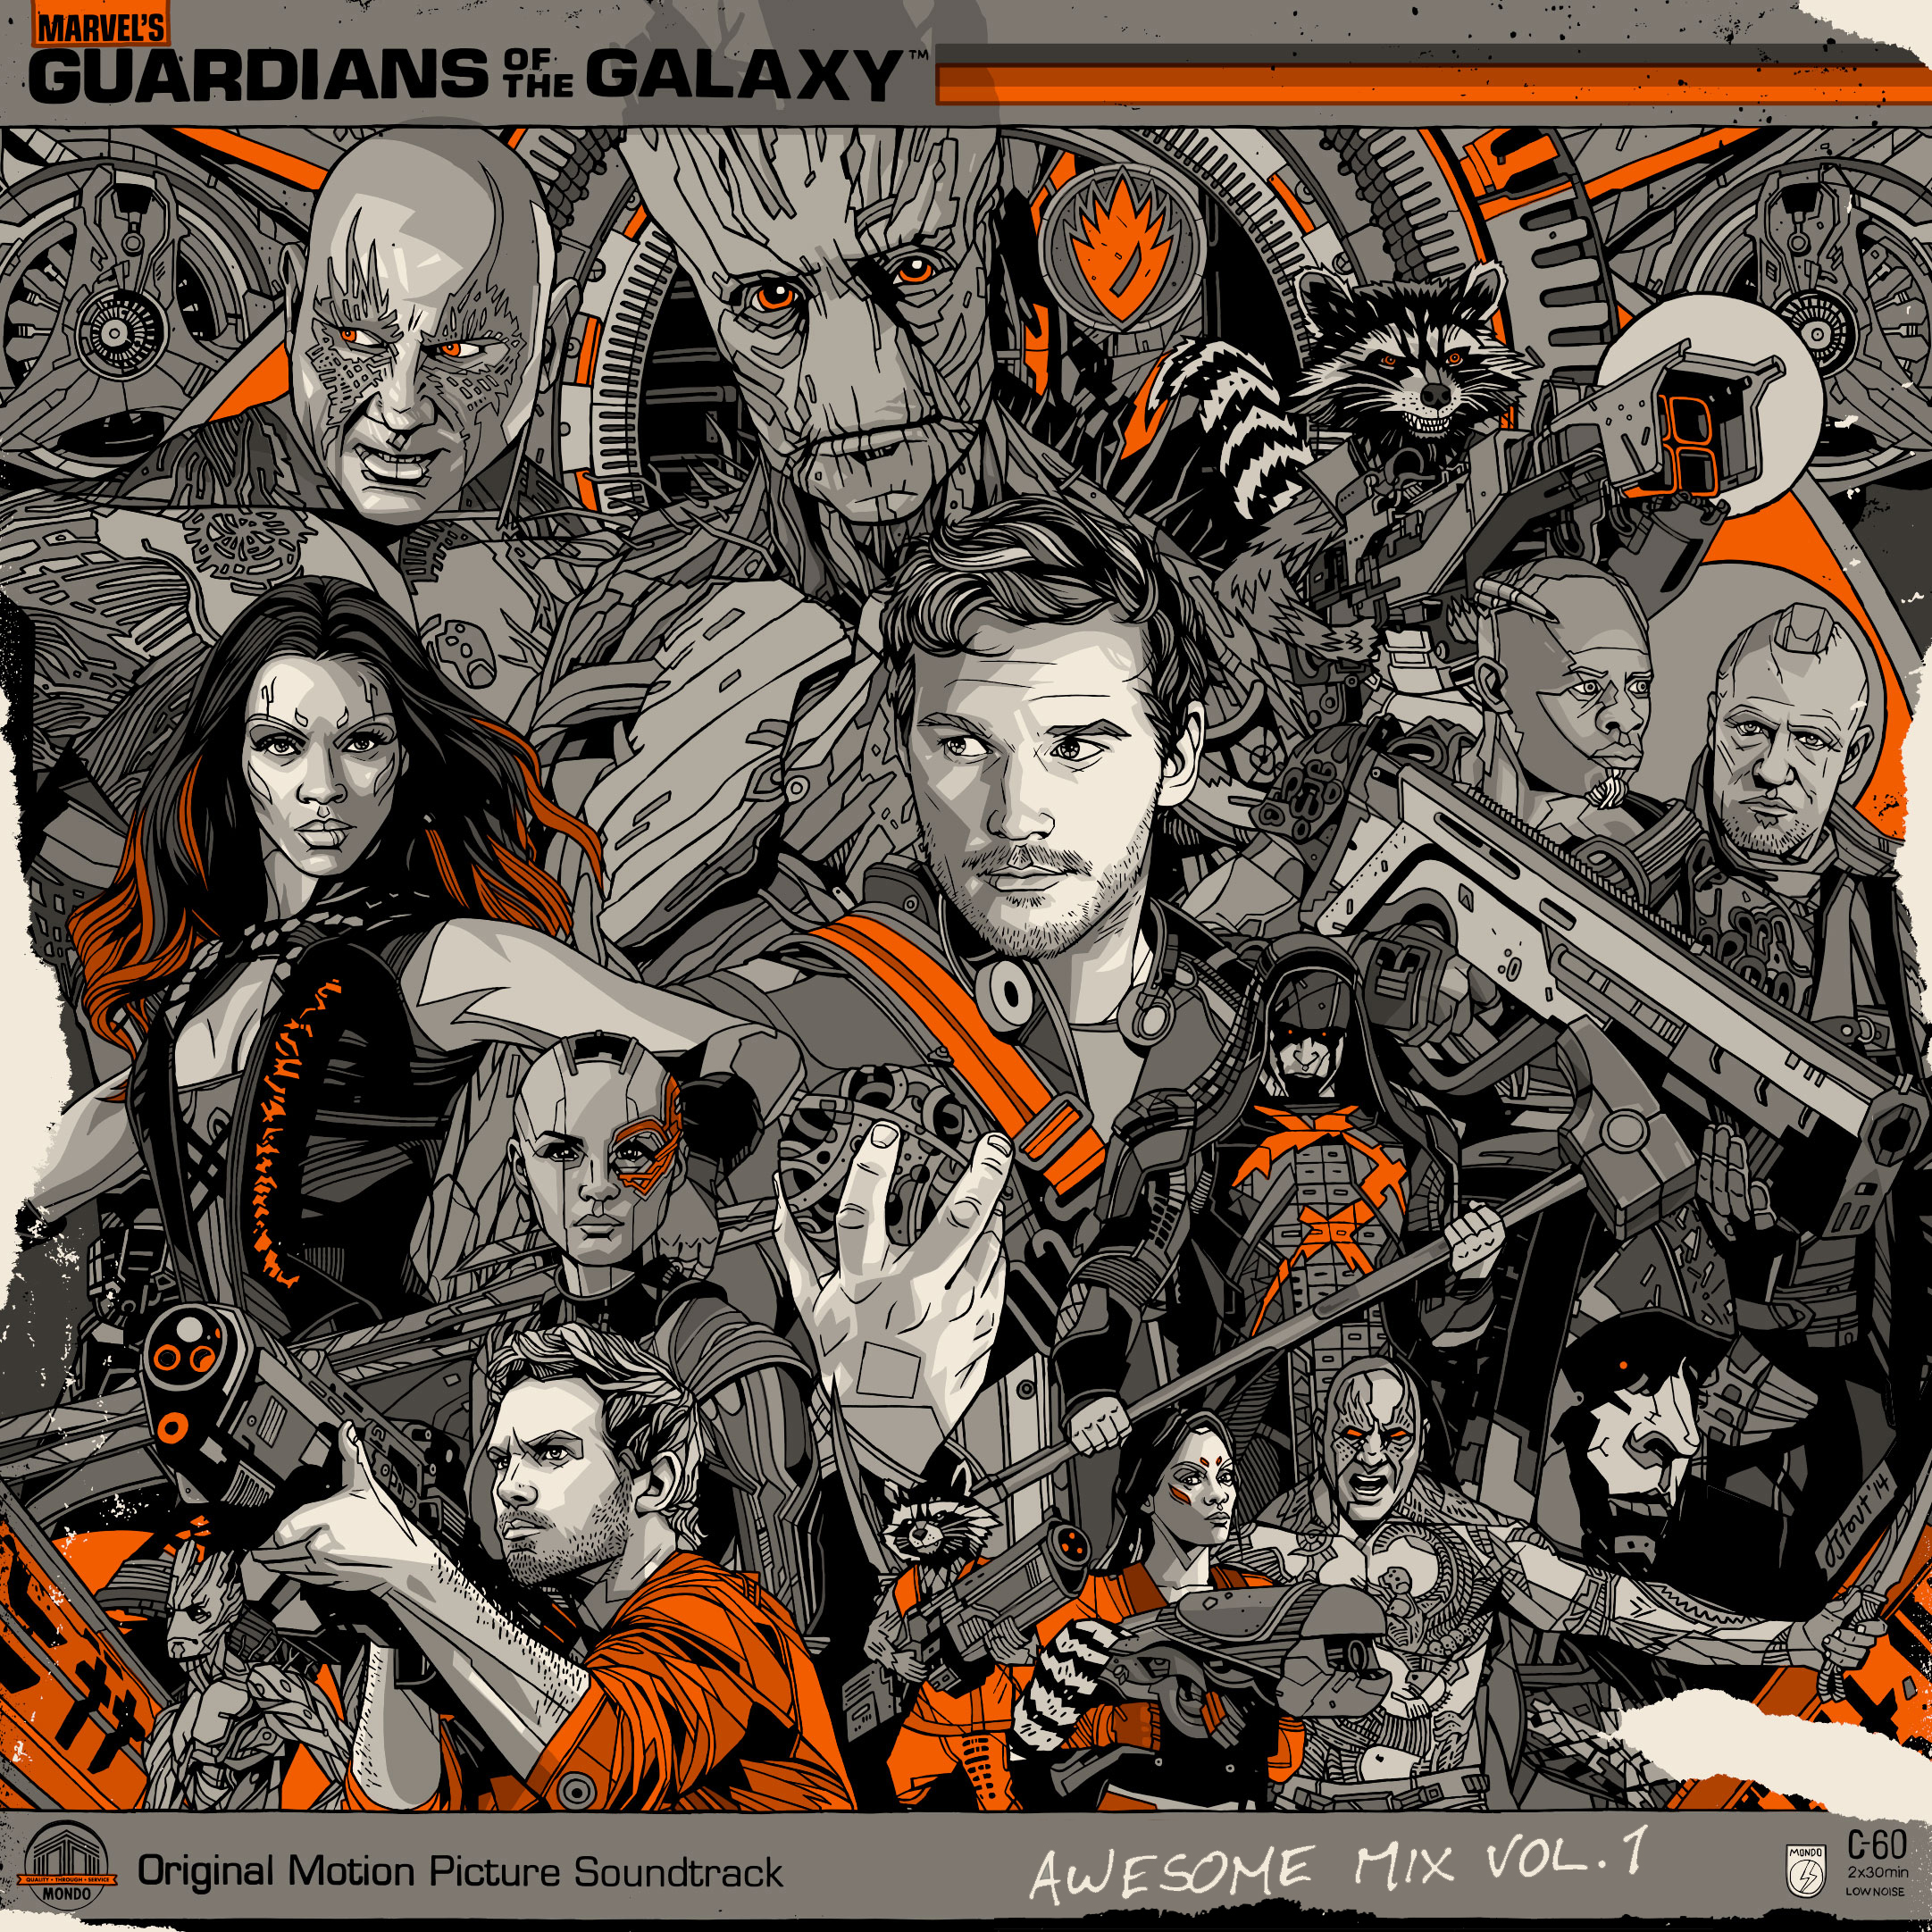 Guardians Of The Galaxy Awesome Mix Vol 1 Deluxe Vinyl Lp